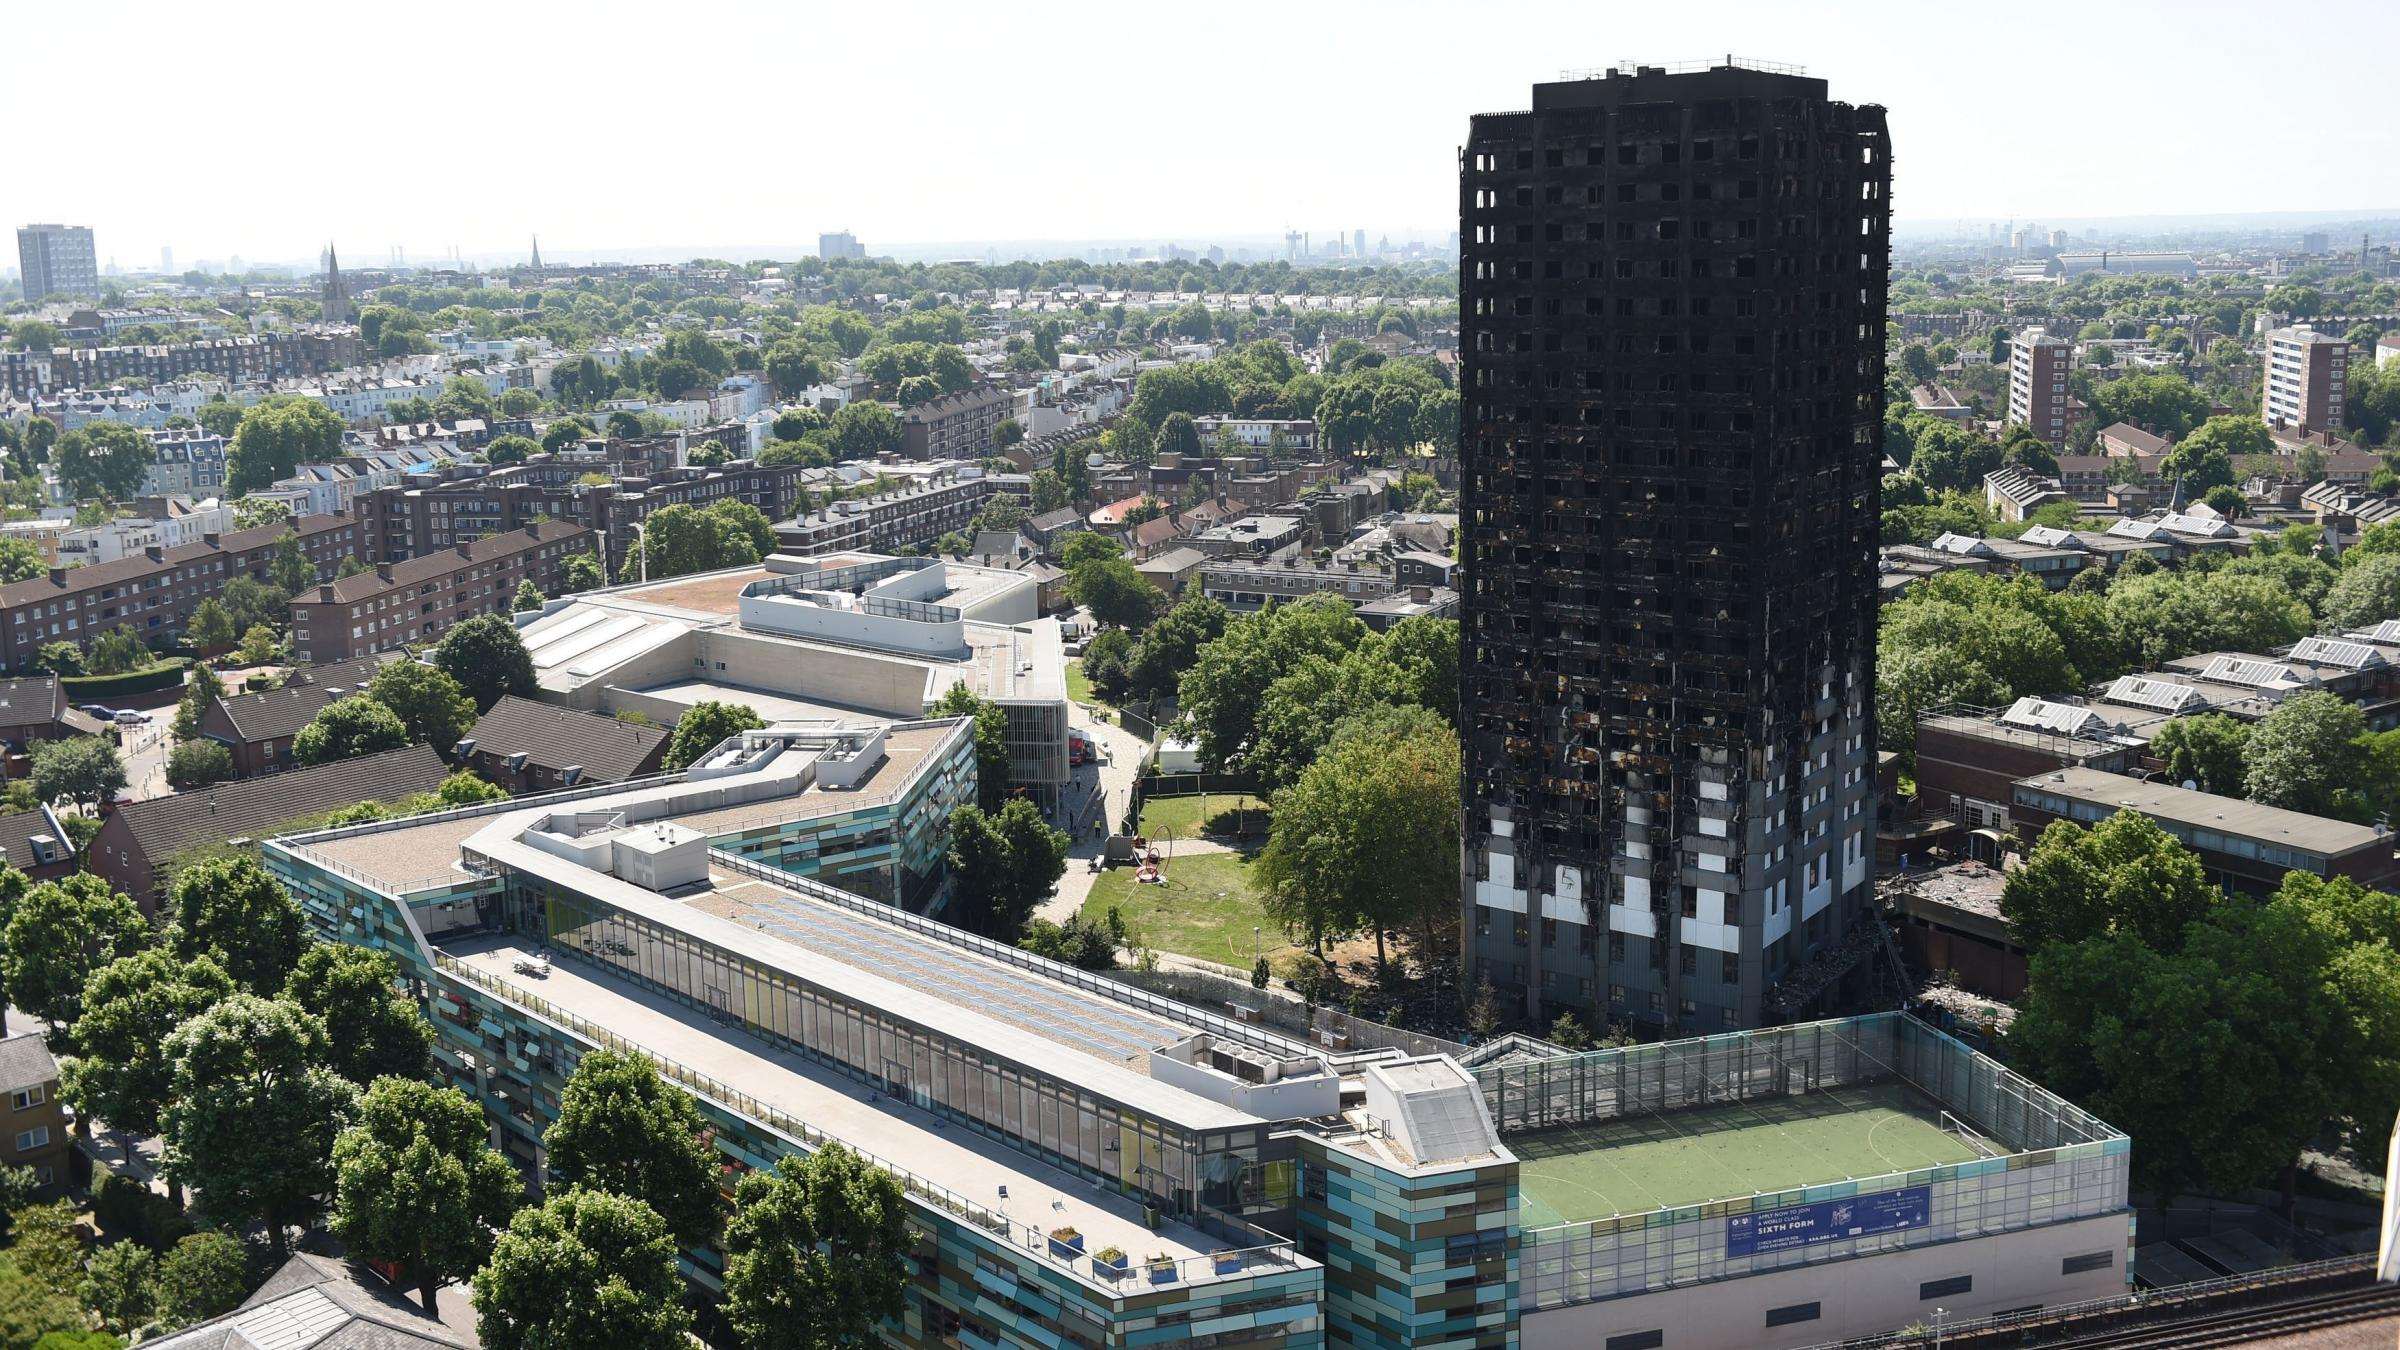 Grenfell Tower victims to get £5500 from emergency fund, Theresa May says